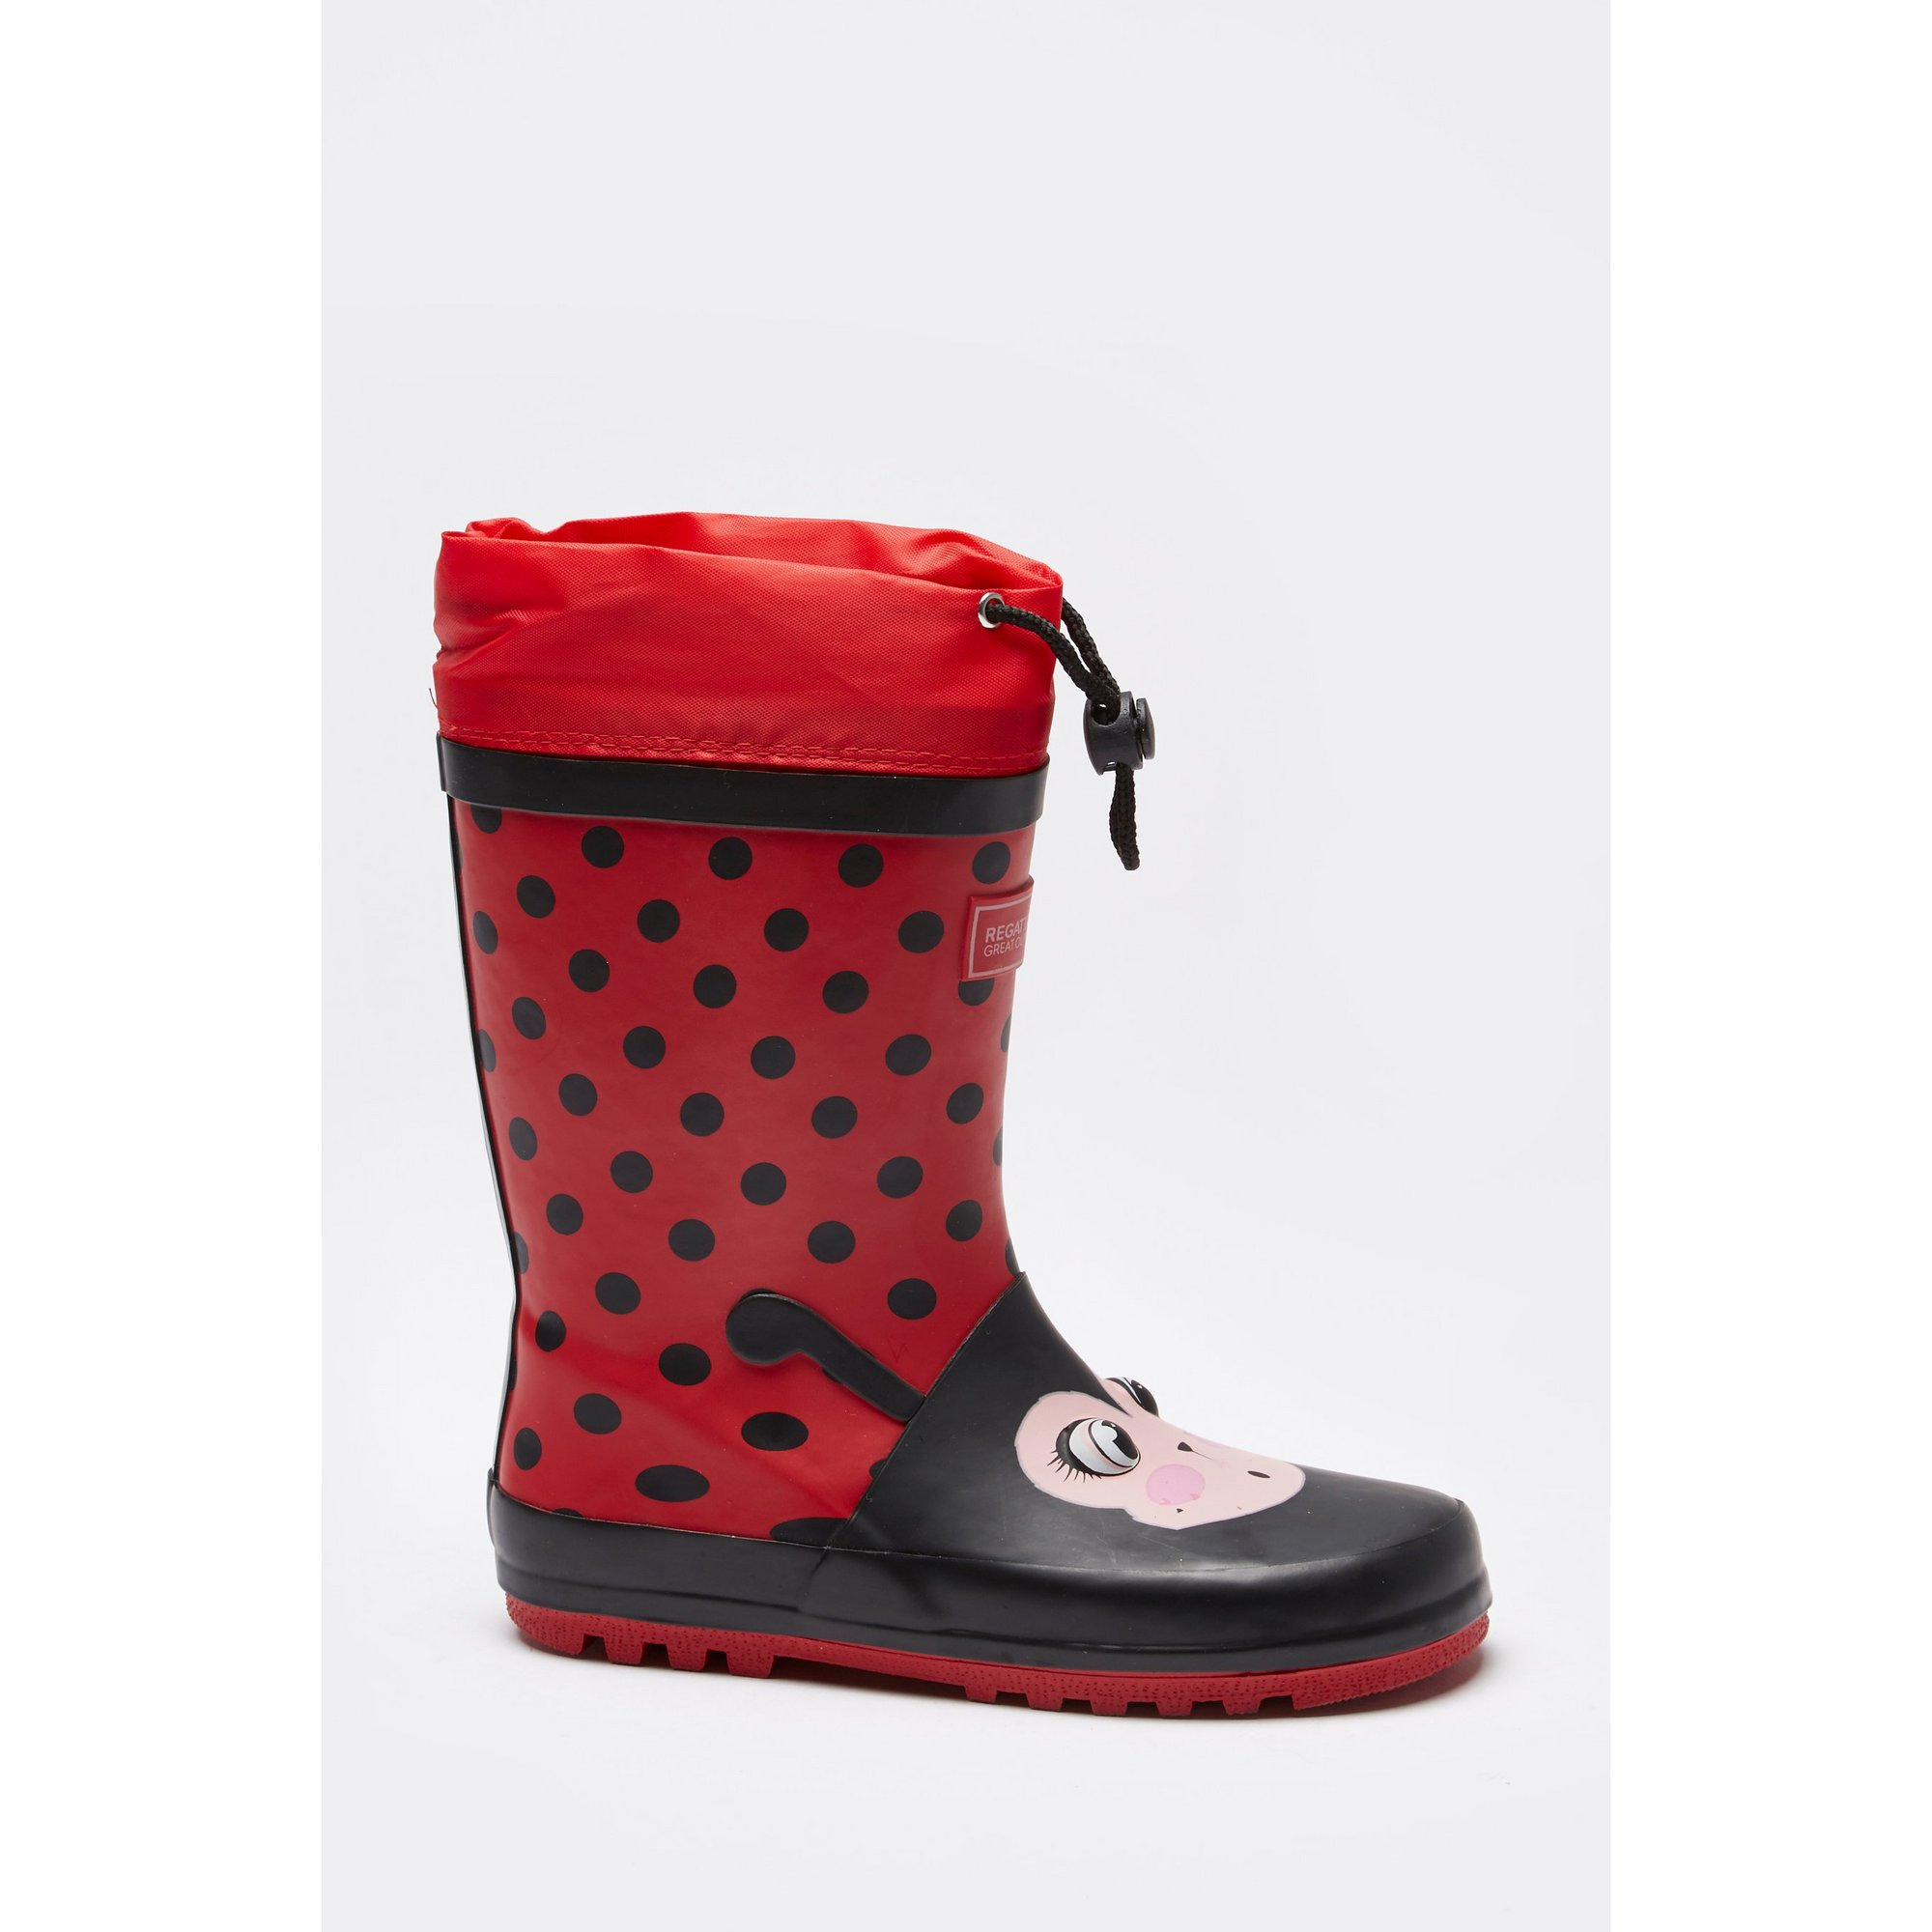 Image of Regatta Mudplay Ladybird Wellies